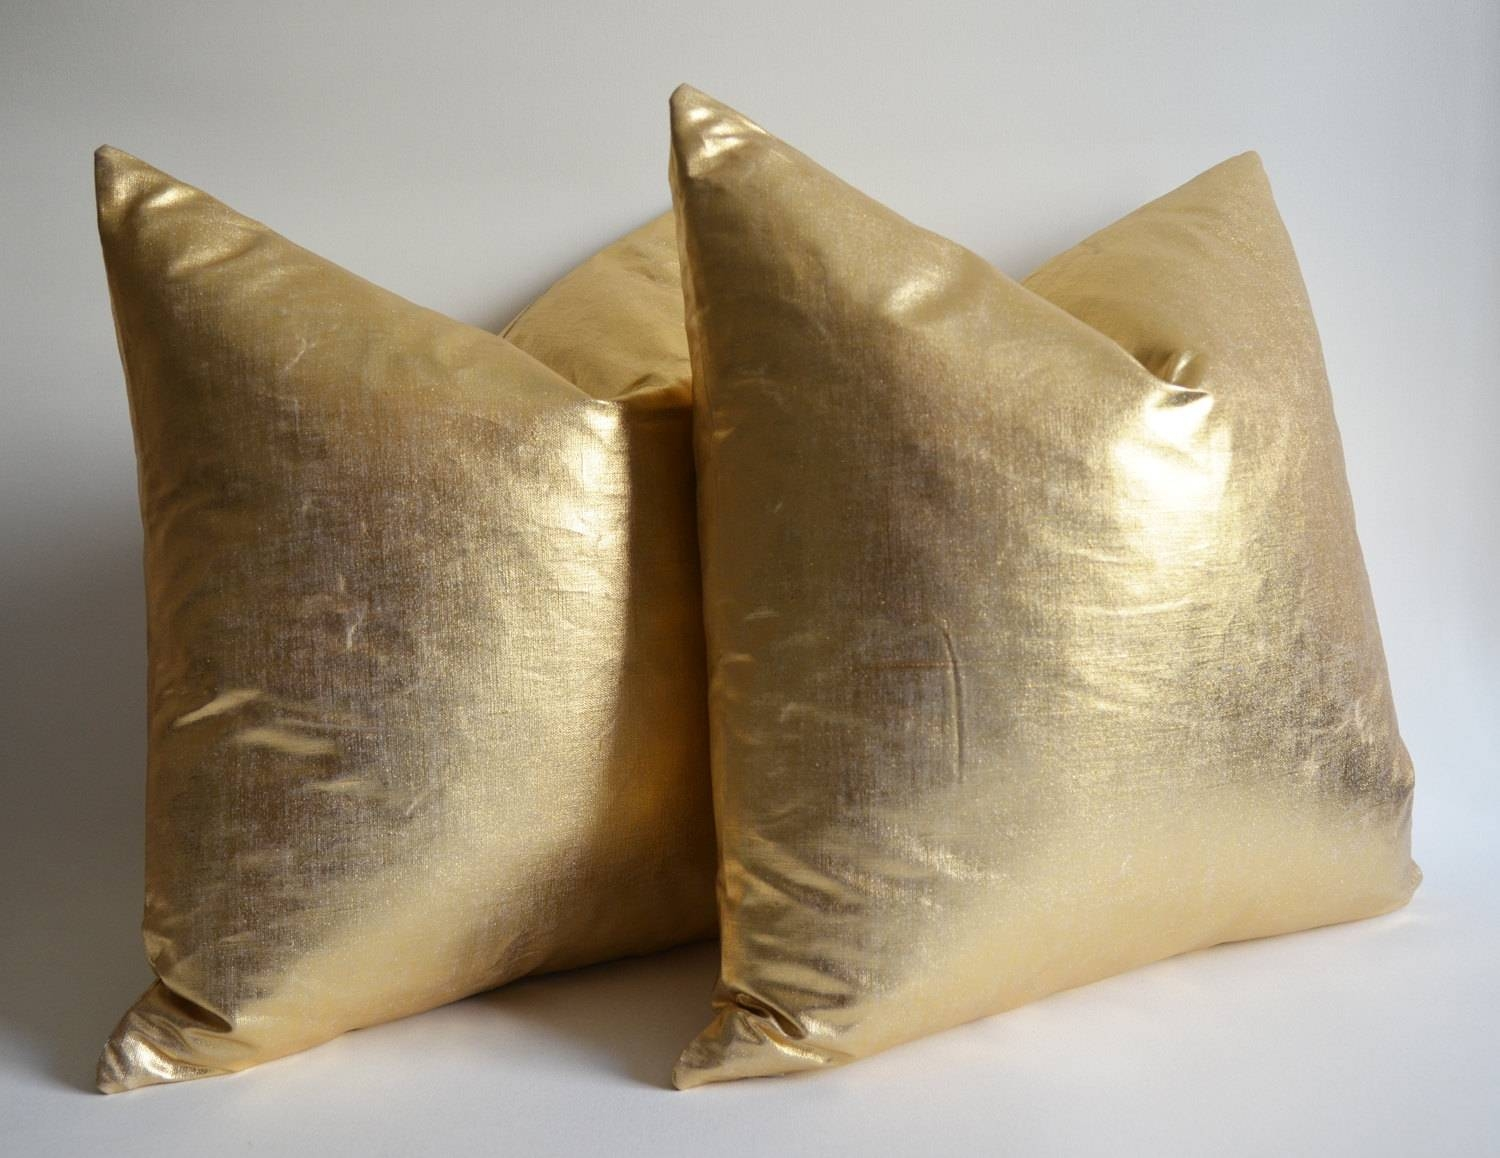 Gold Throw Pillows Covers : Decorative Gold Throw Pillows – Home with Gold Sofa Pillows (Image 5 of 15)